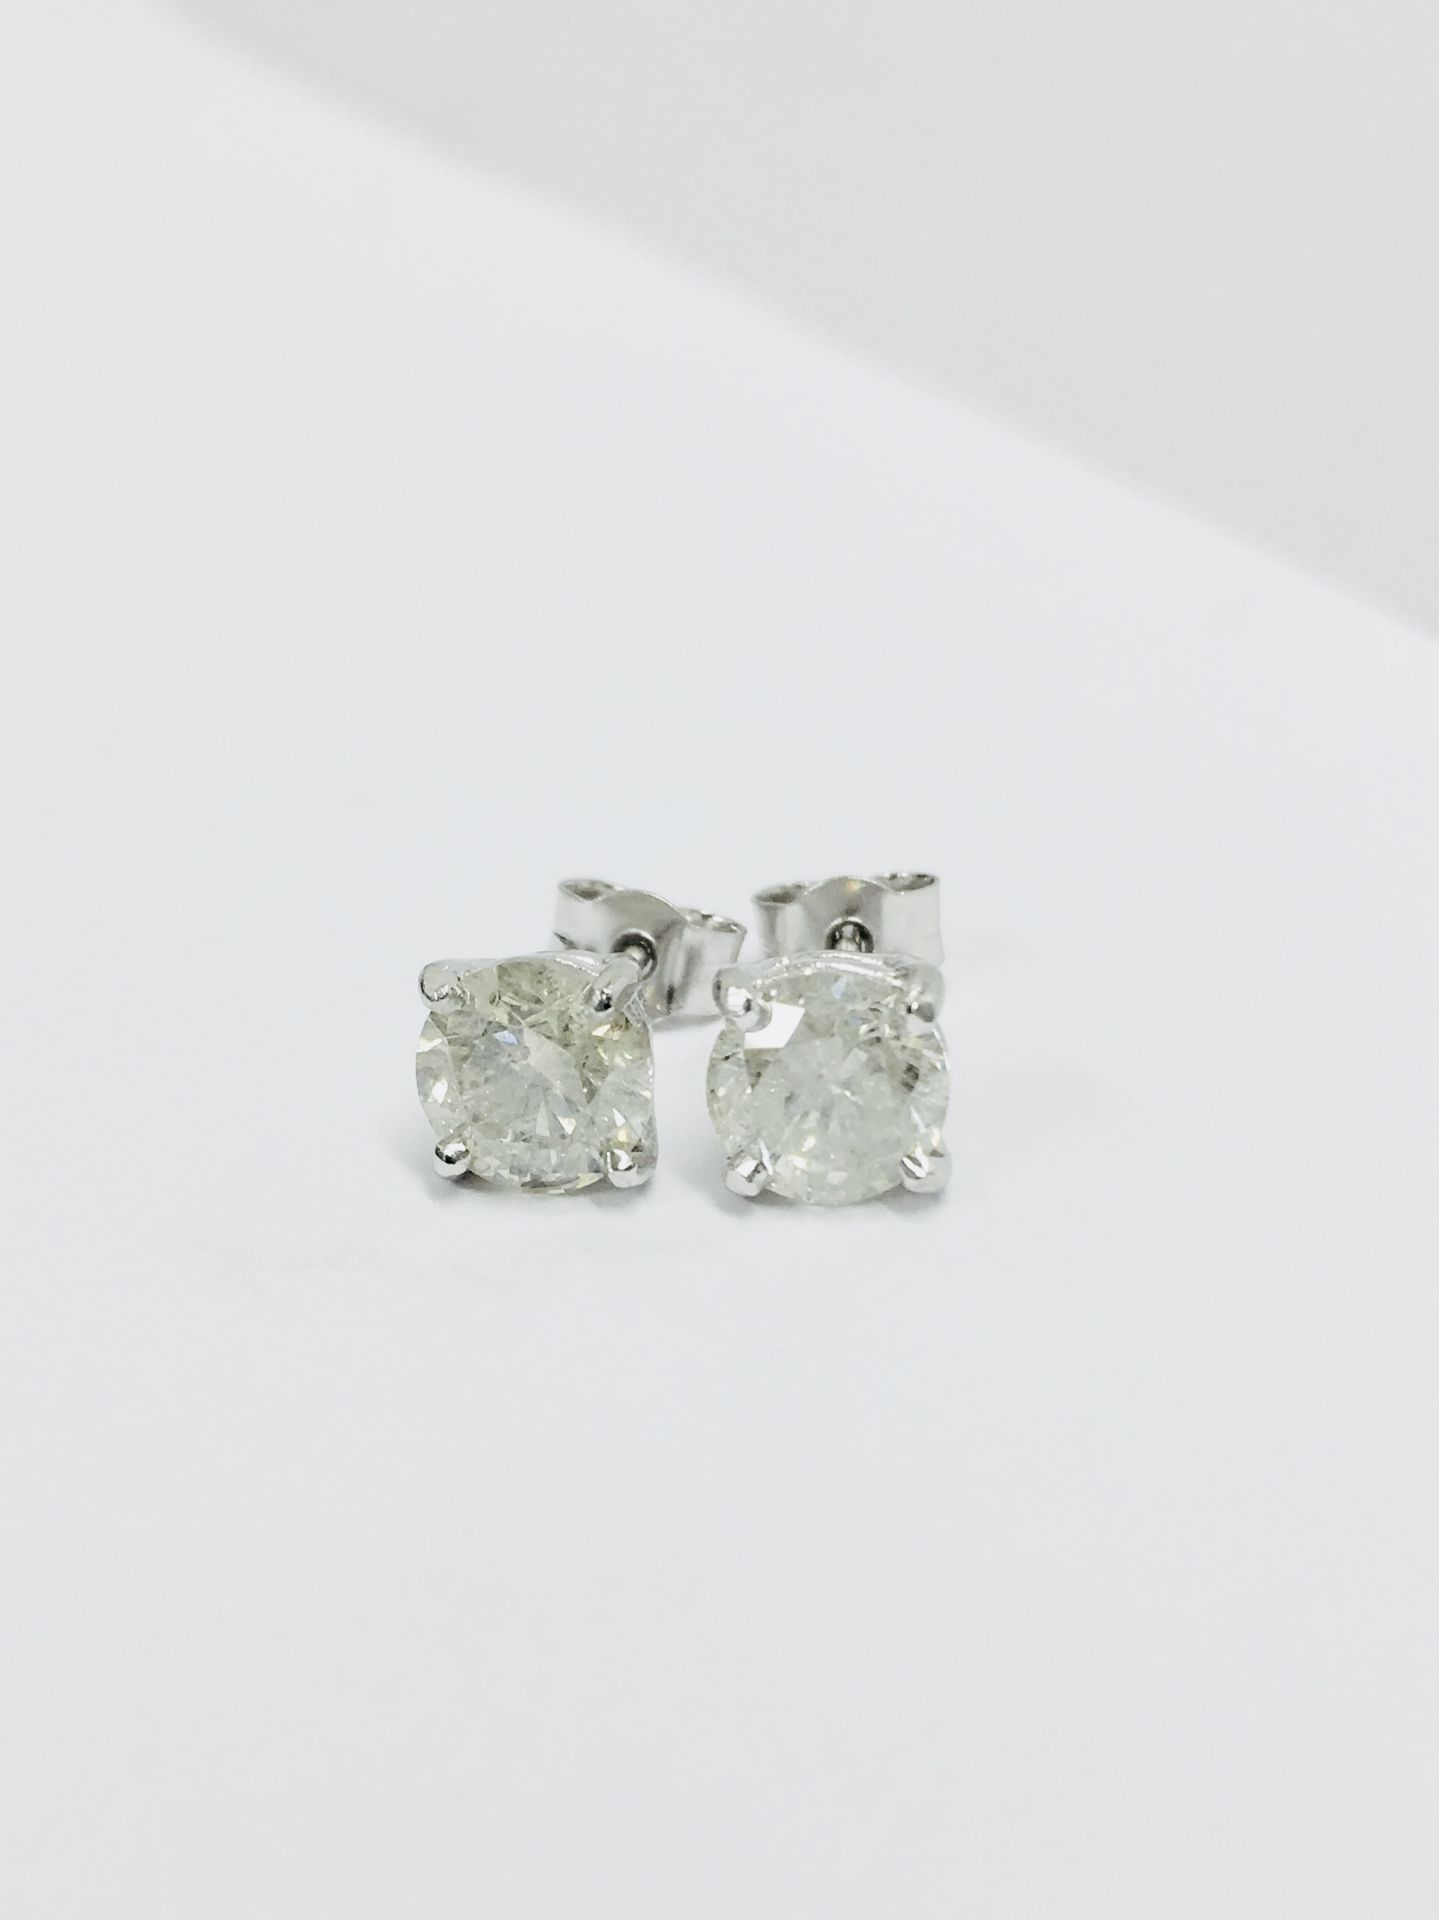 Lot 56 - 2.00Ct Solitaire Diamond Stud Earrings Set With Brilliant Cut Diamonds Which Have Been Enhanced.